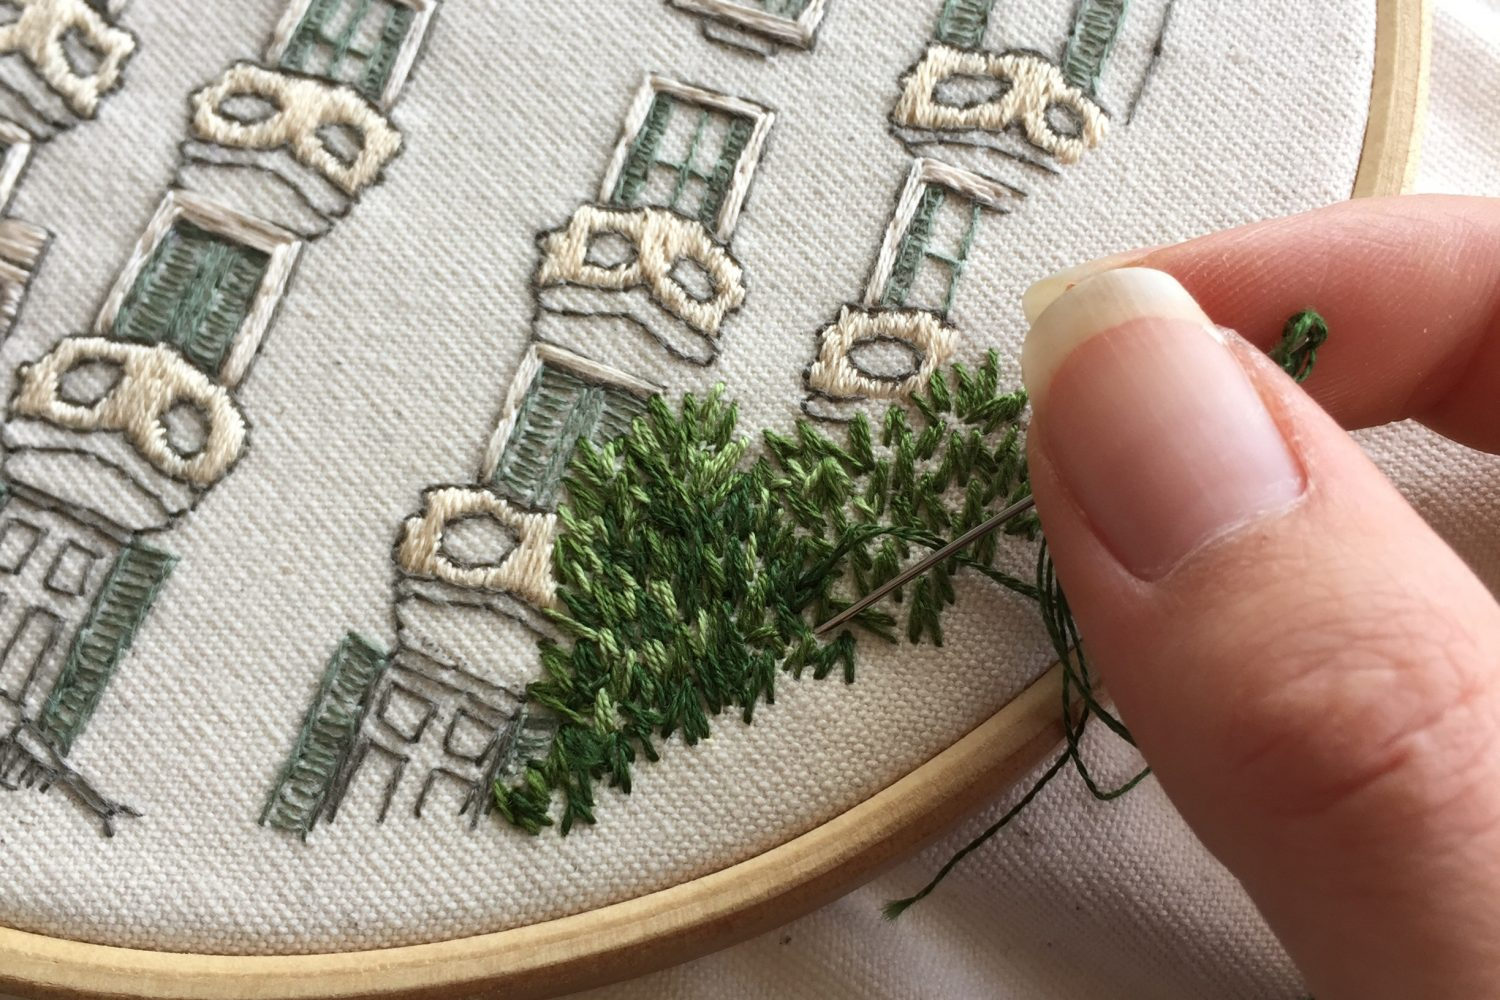 How To Read Embroidery Patterns How To Do Embroidery Free Video Library Charles And Elin